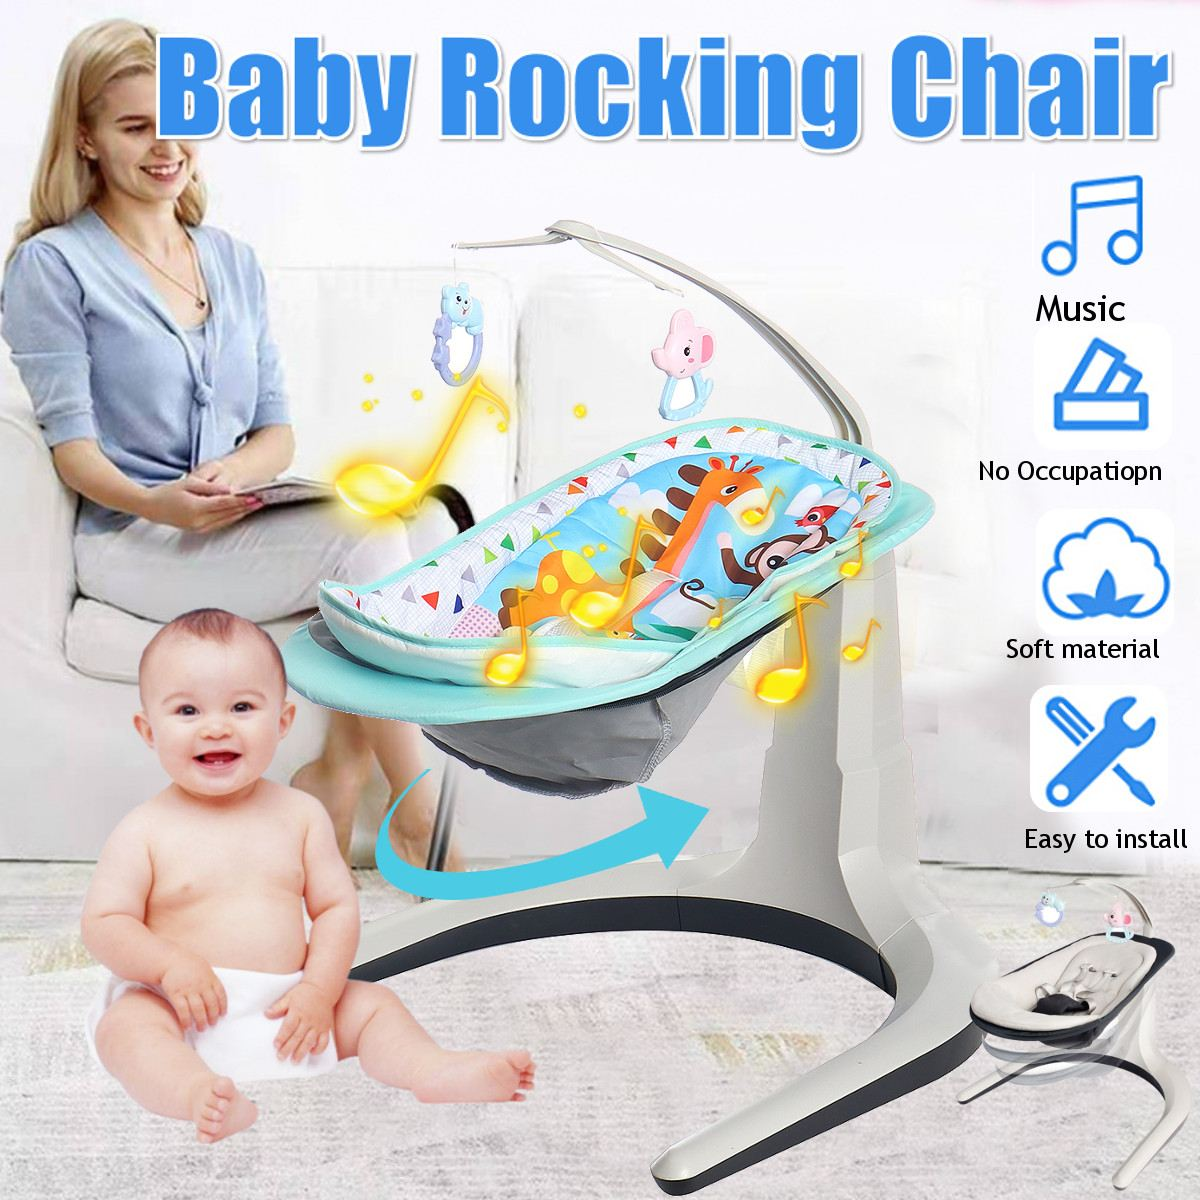 2 in 1 Newborn Gift Multi function Music Electric Swing Chair Infant Baby Rocking Chair Comfort Home v3 VC